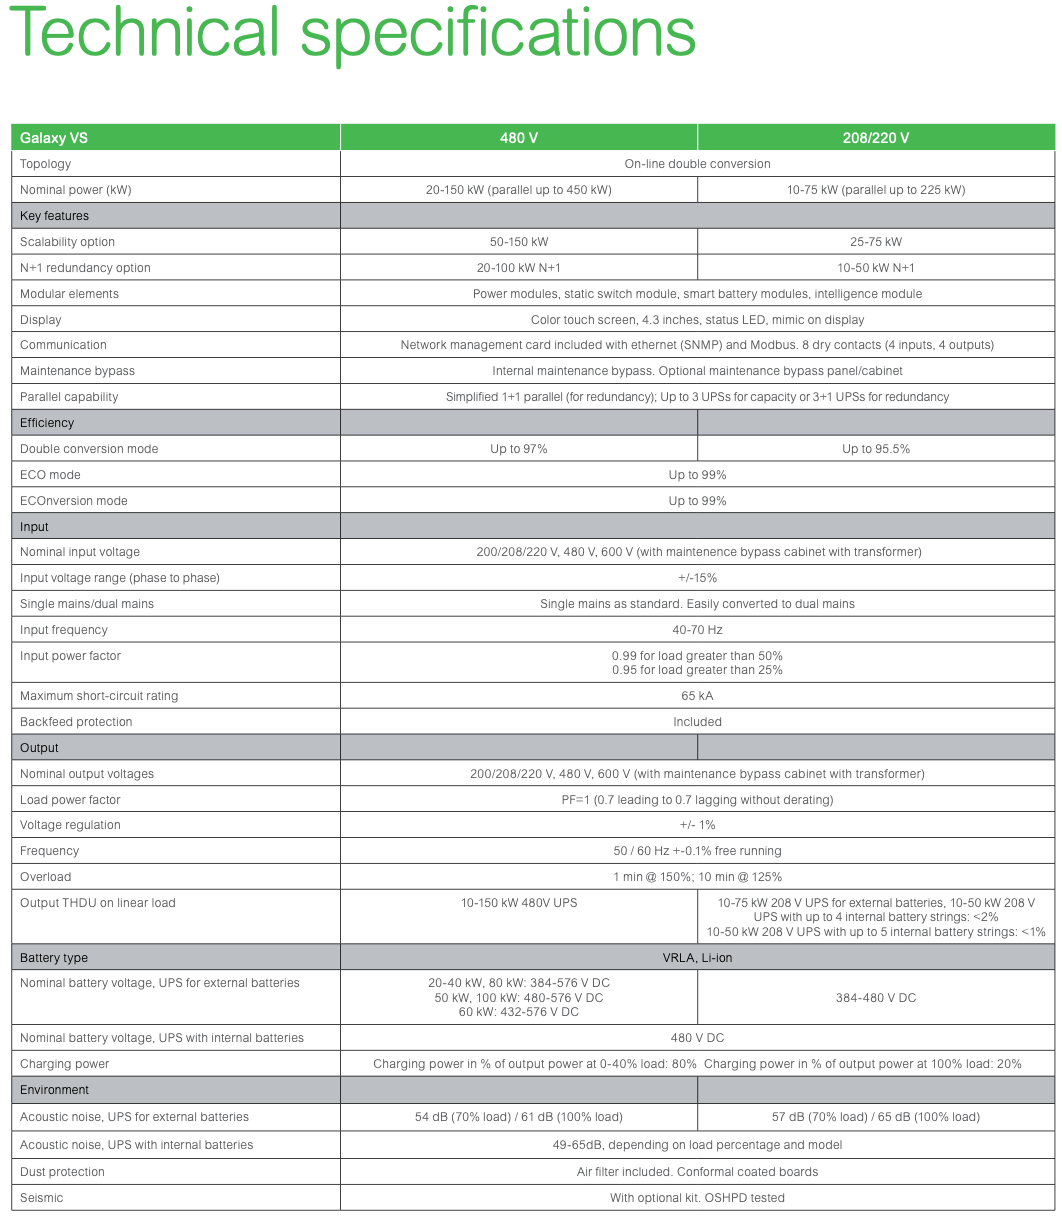 Galaxy VS Technical Specifications